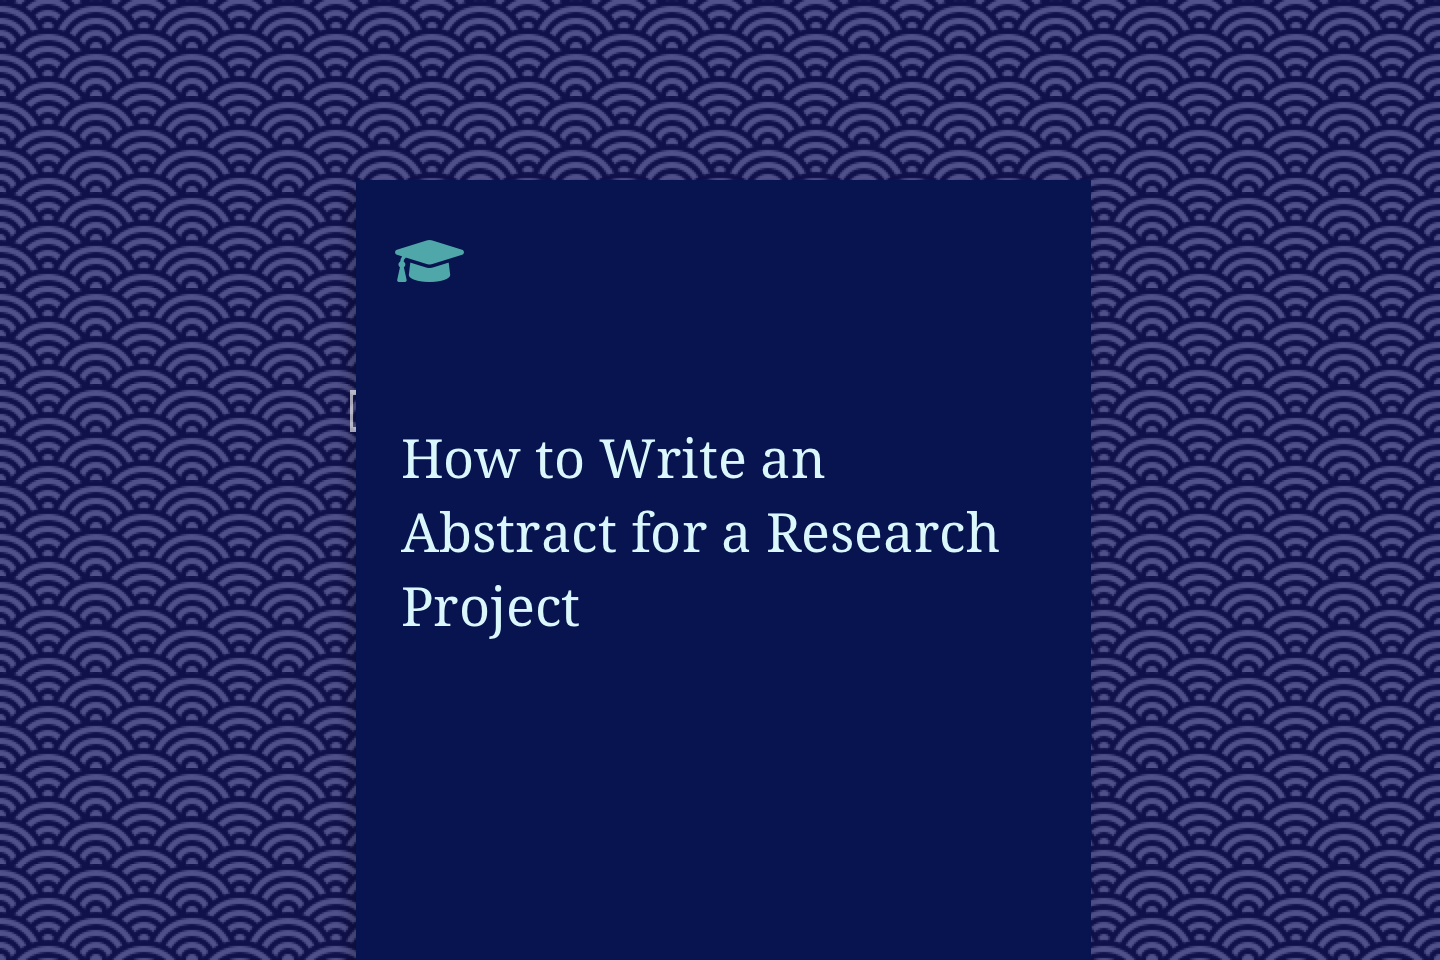 How to Write an Abstract for a Research Project